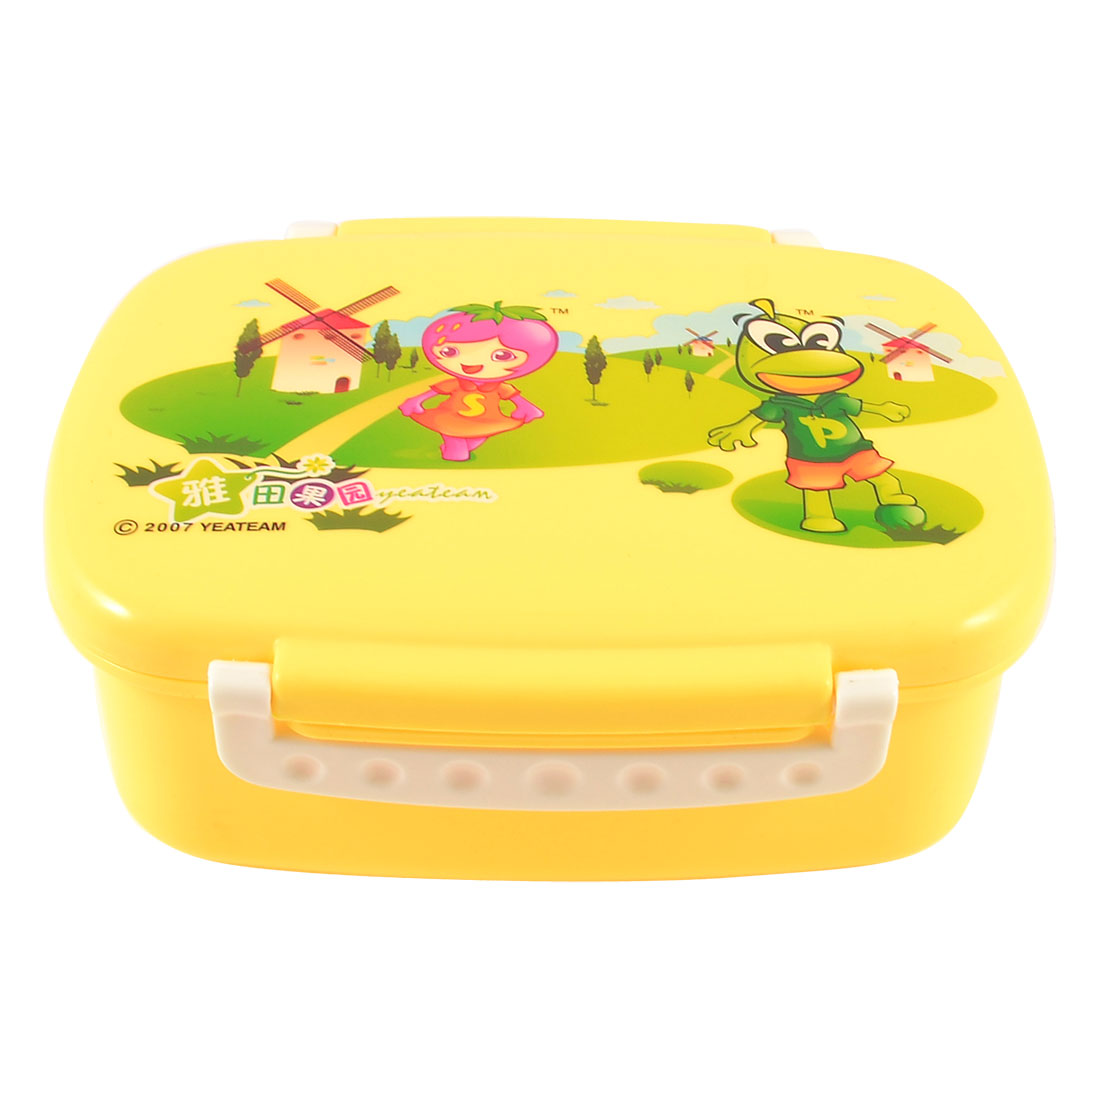 Travel Cartoon Print Orange Plastic Food Container Lunch Box Case w Spoon